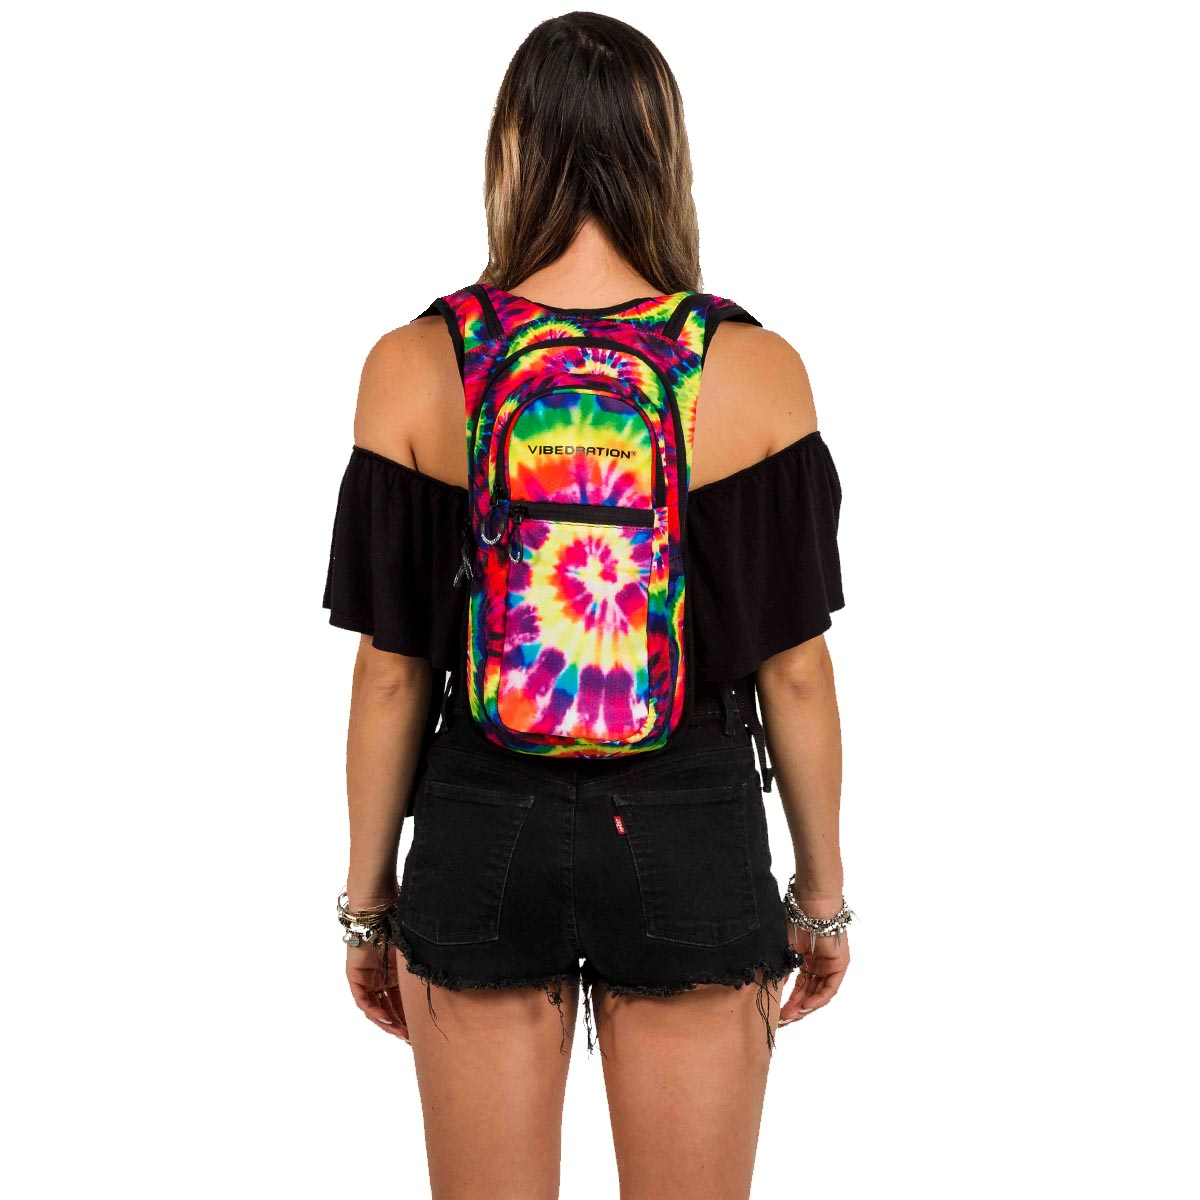 Back view of female wearing tie dye backpack with hydration pack